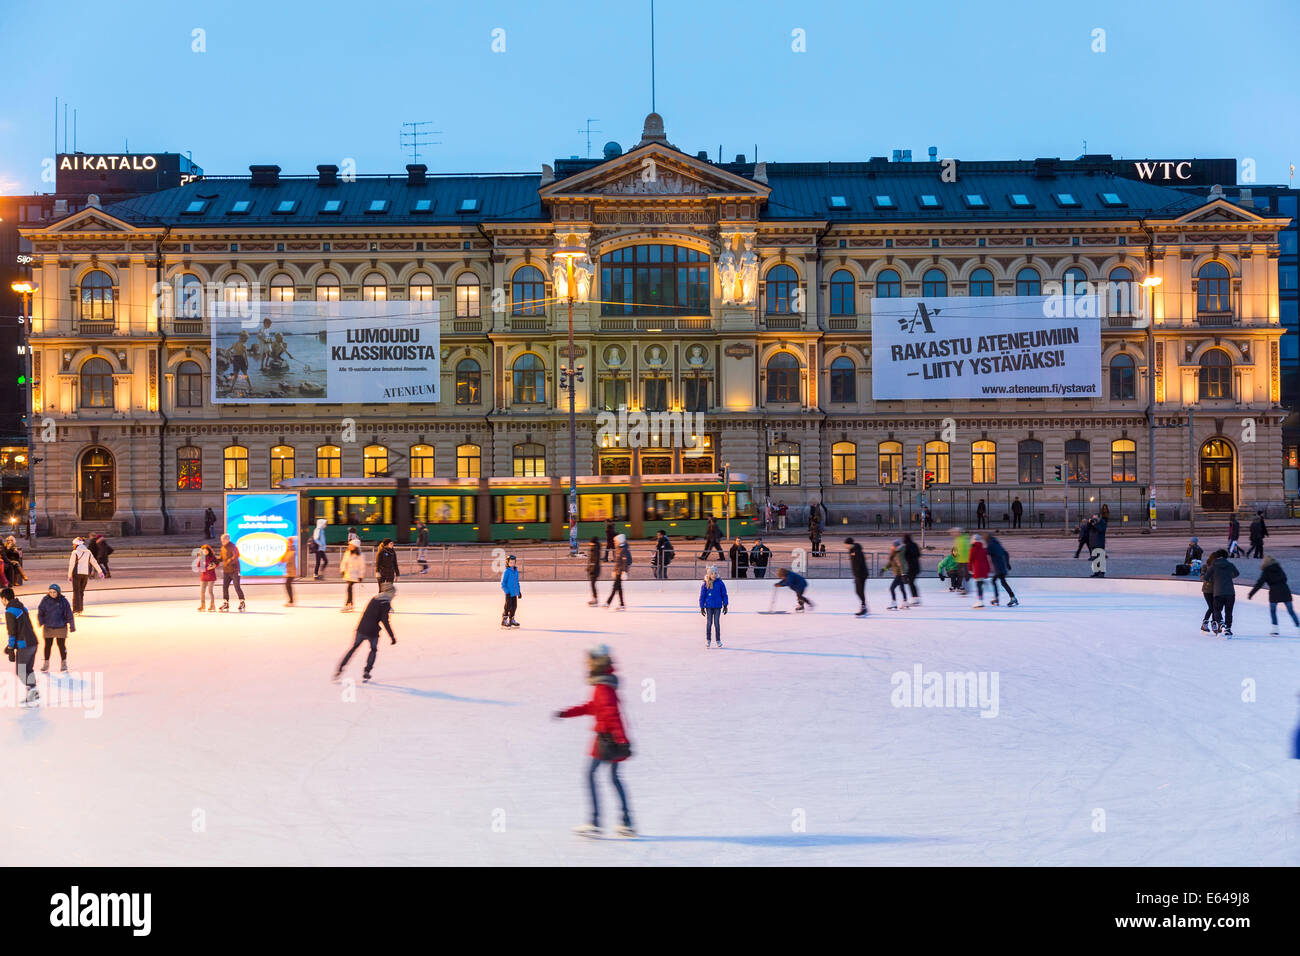 Ice rink in front of Ateneum, Art Museum, Helsinki, Finland - Stock Image